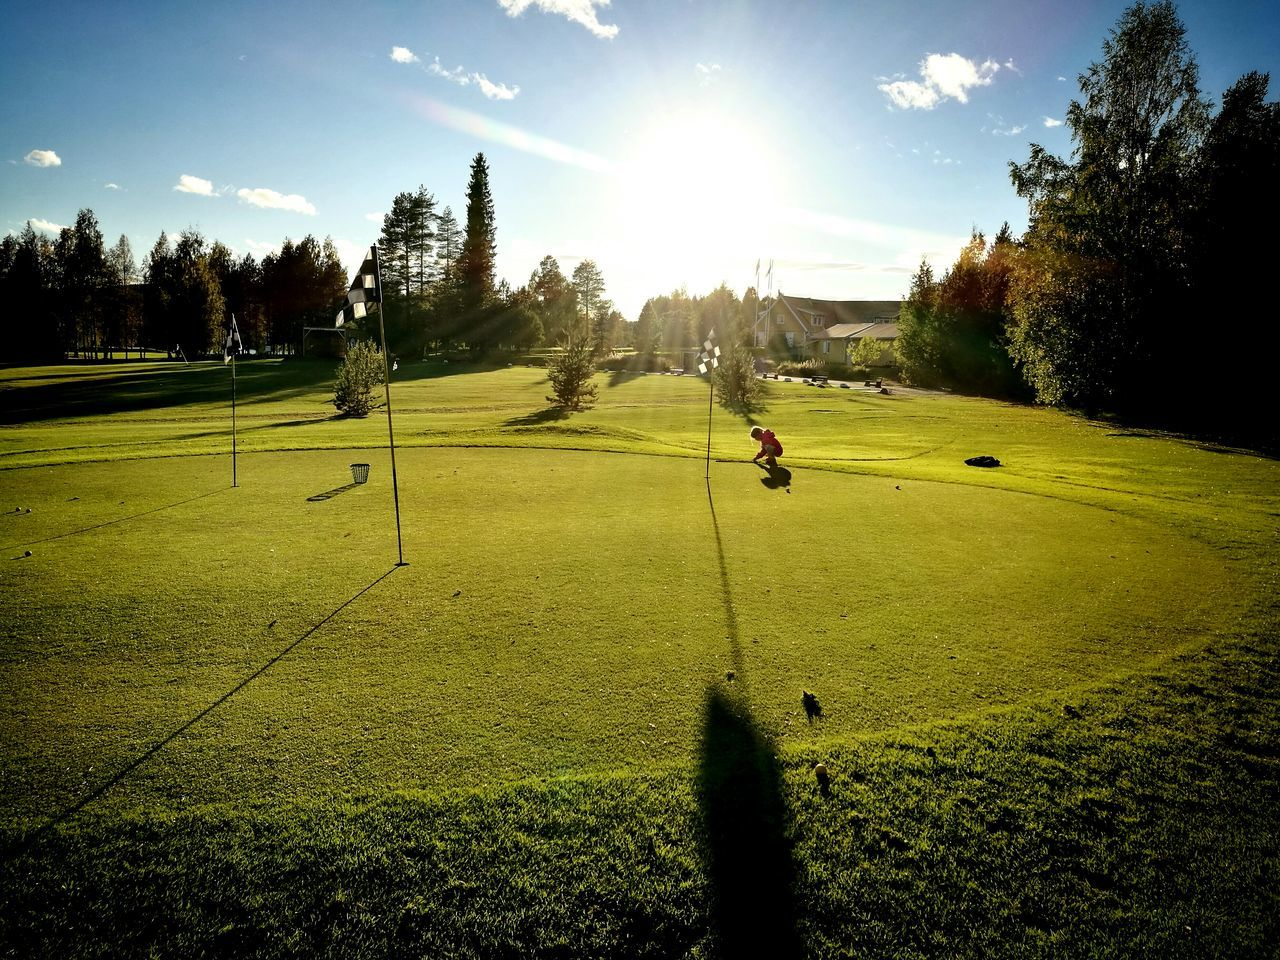 golf, golf course, tree, leisure activity, sport, green - golf course, grass, sunlight, taking a shot - sport, green color, playing, golfer, golf swing, sky, competition, playing field, nature, shadow, men, standing, outdoors, lifestyles, golf club, sportsman, day, one person, beauty in nature, people